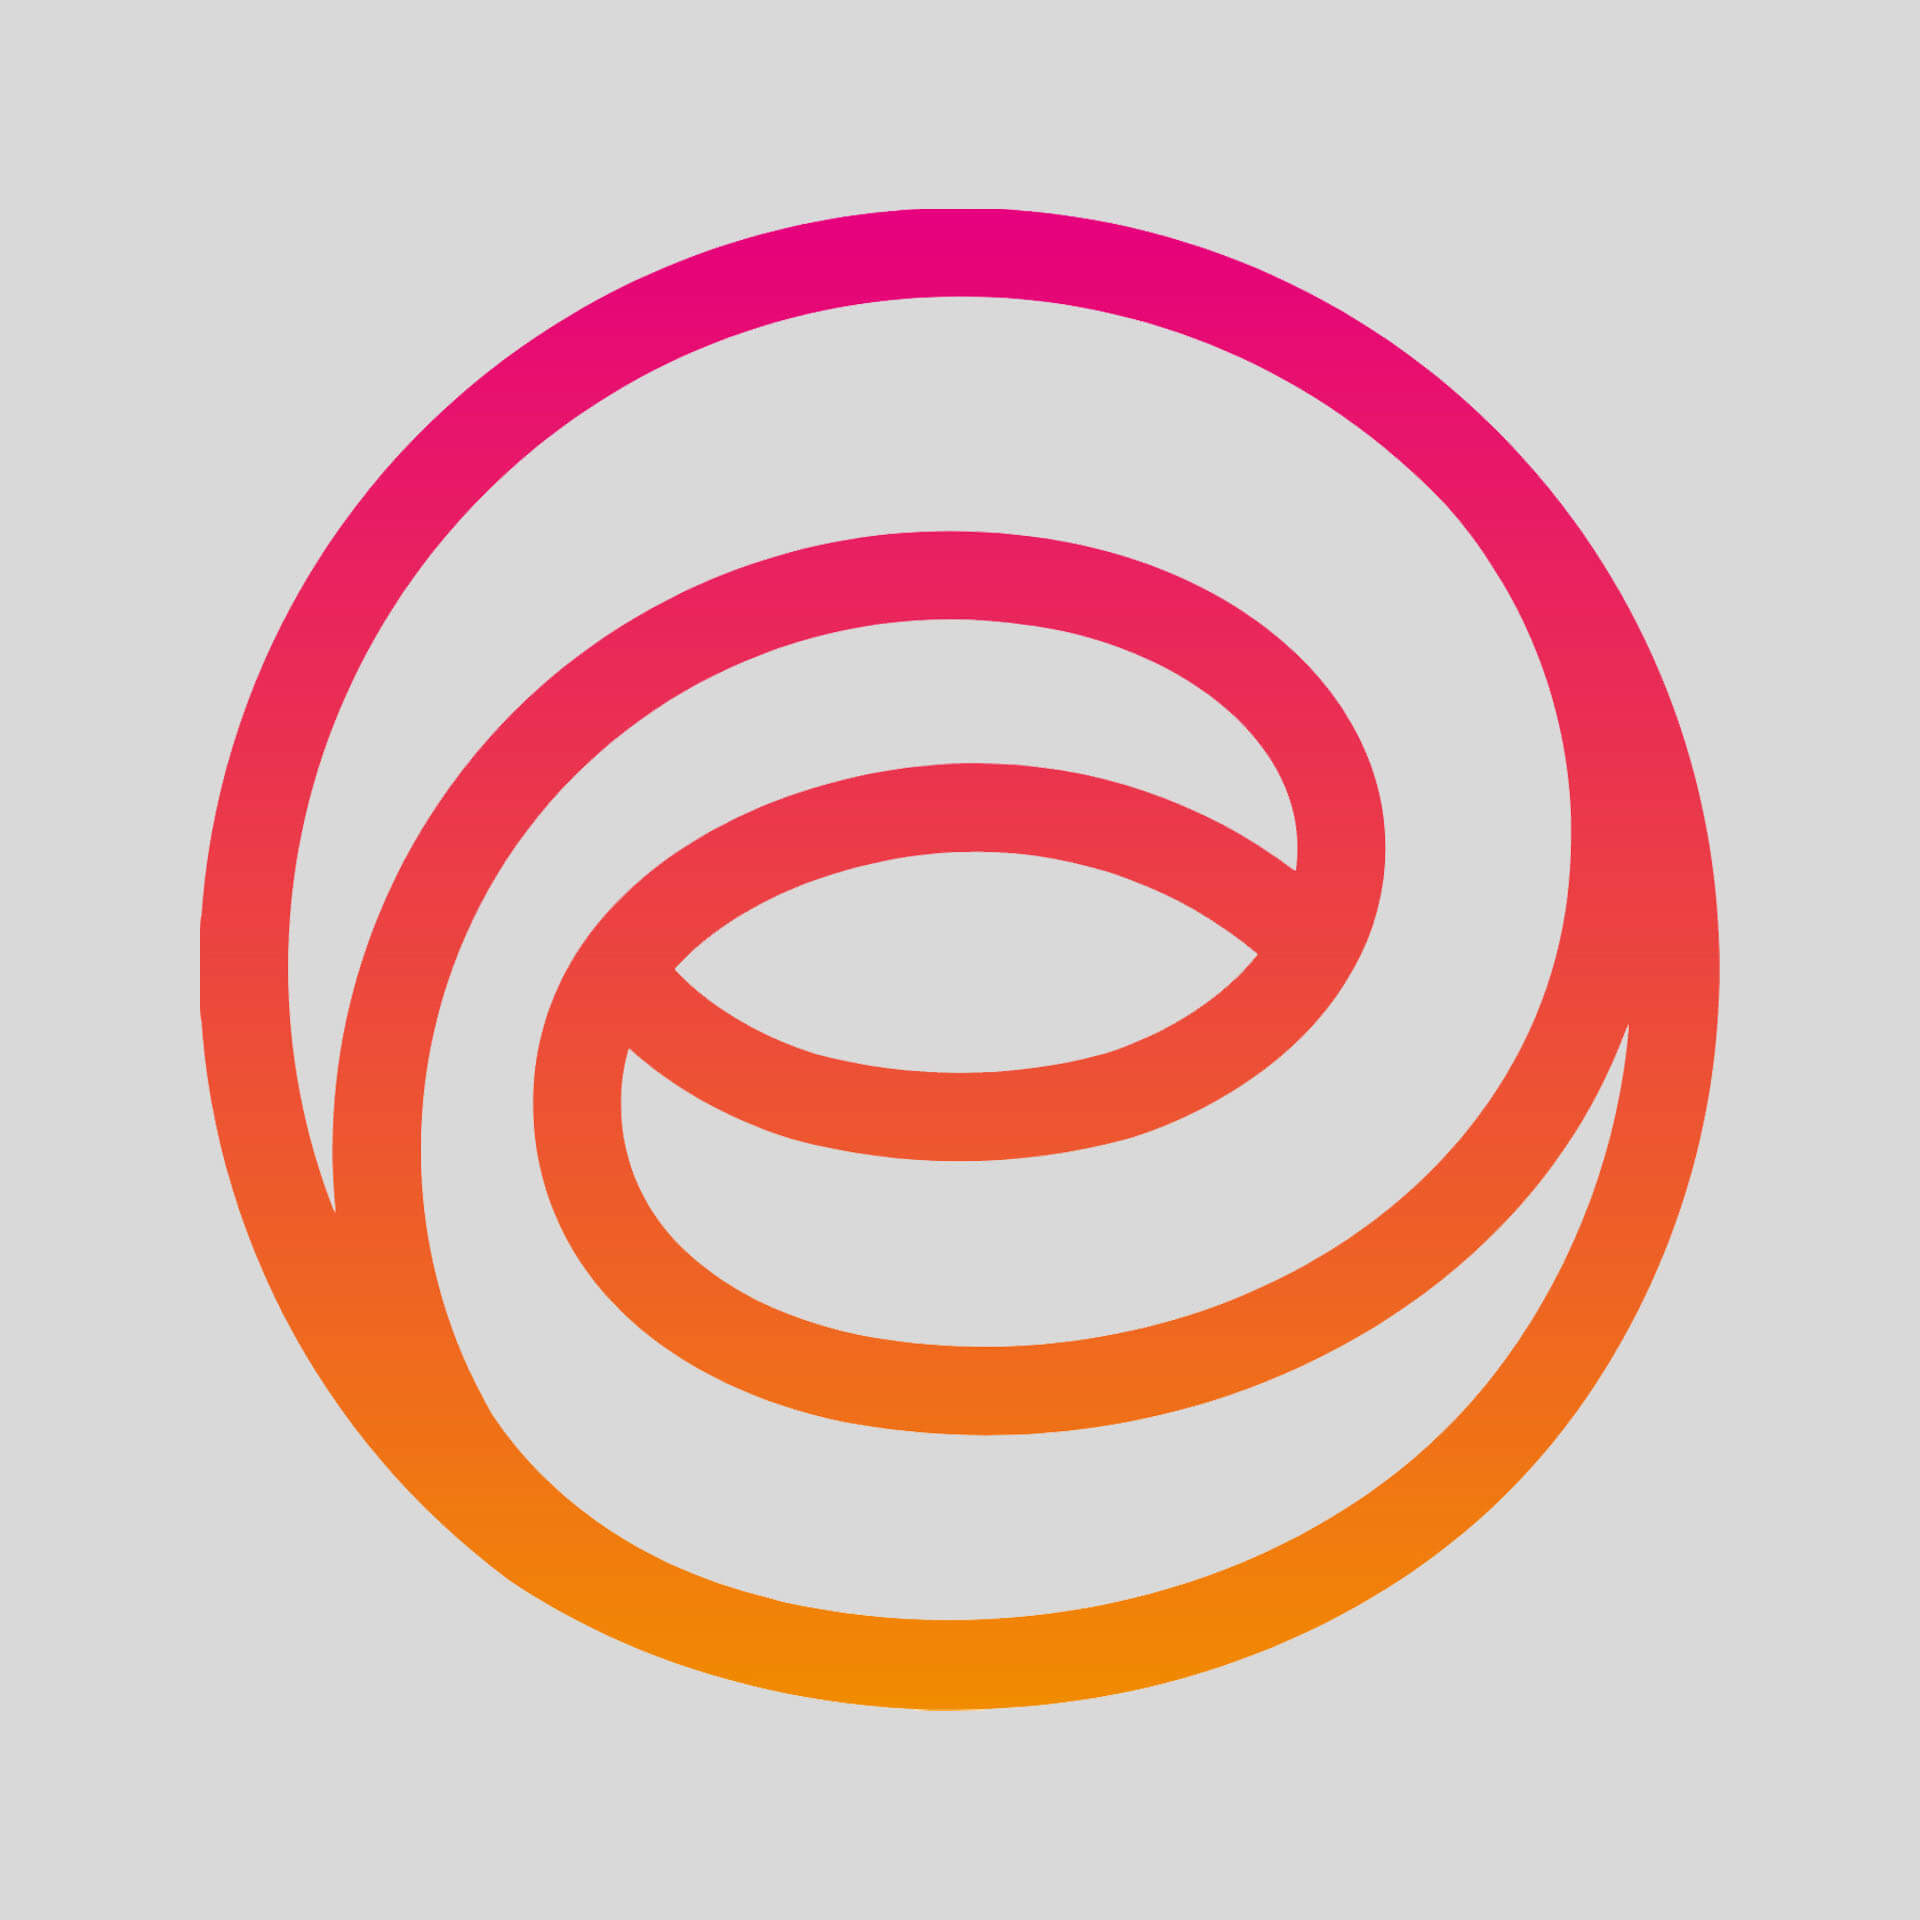 Ethos Swirly Circle Logo